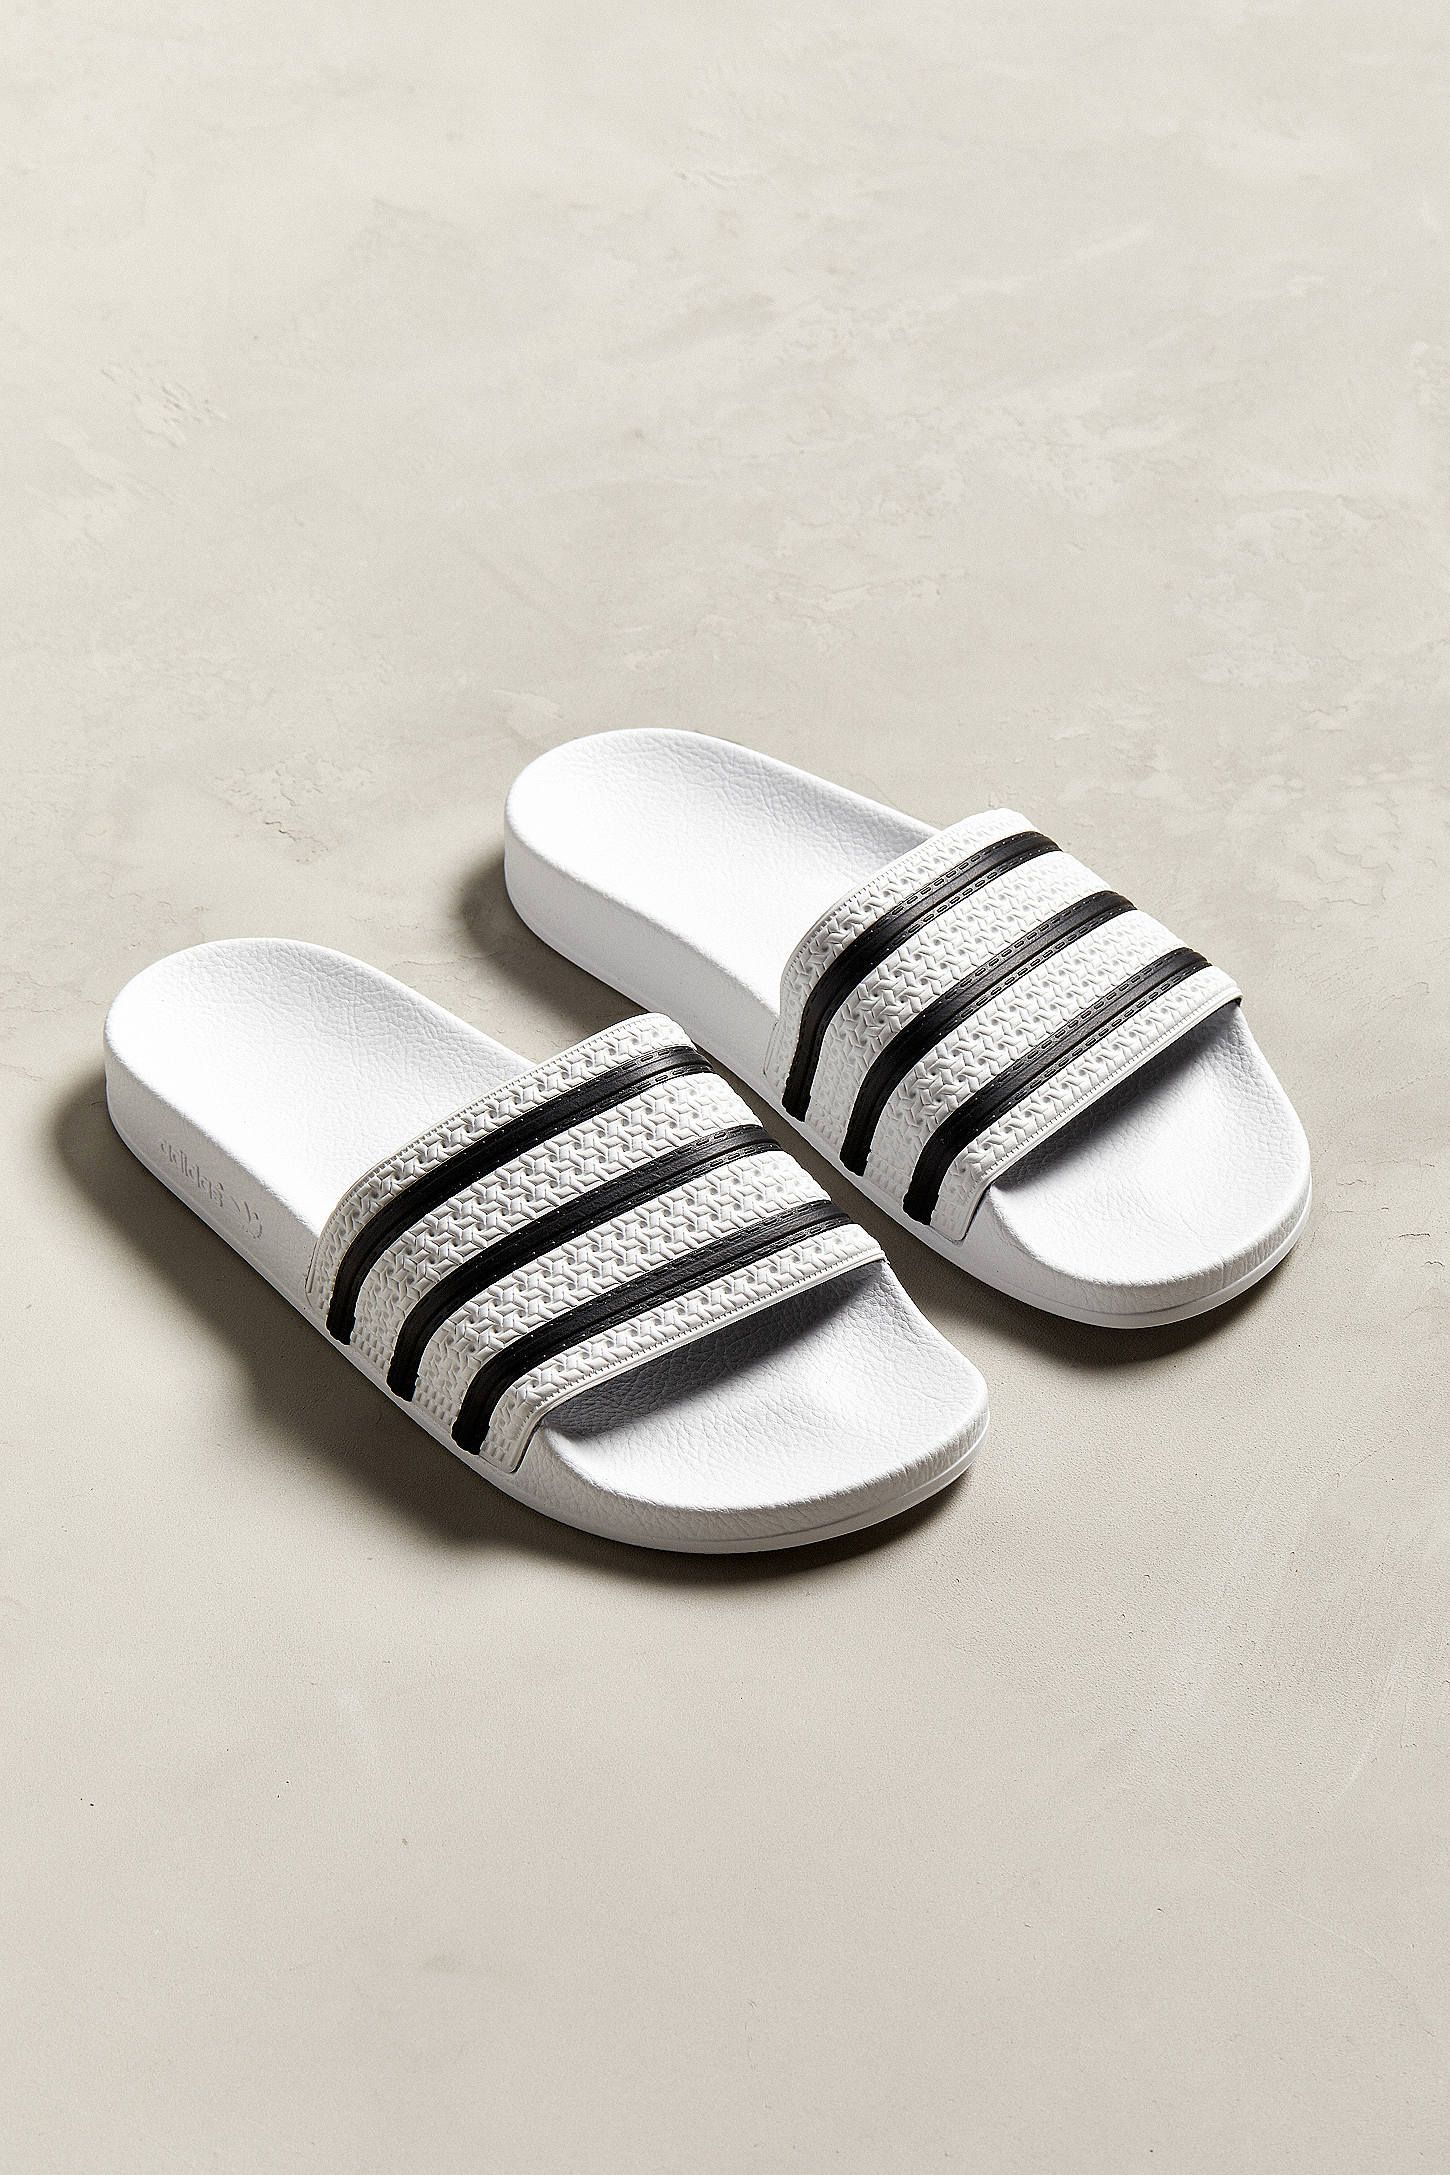 200+ Best Adidas slides outfit images